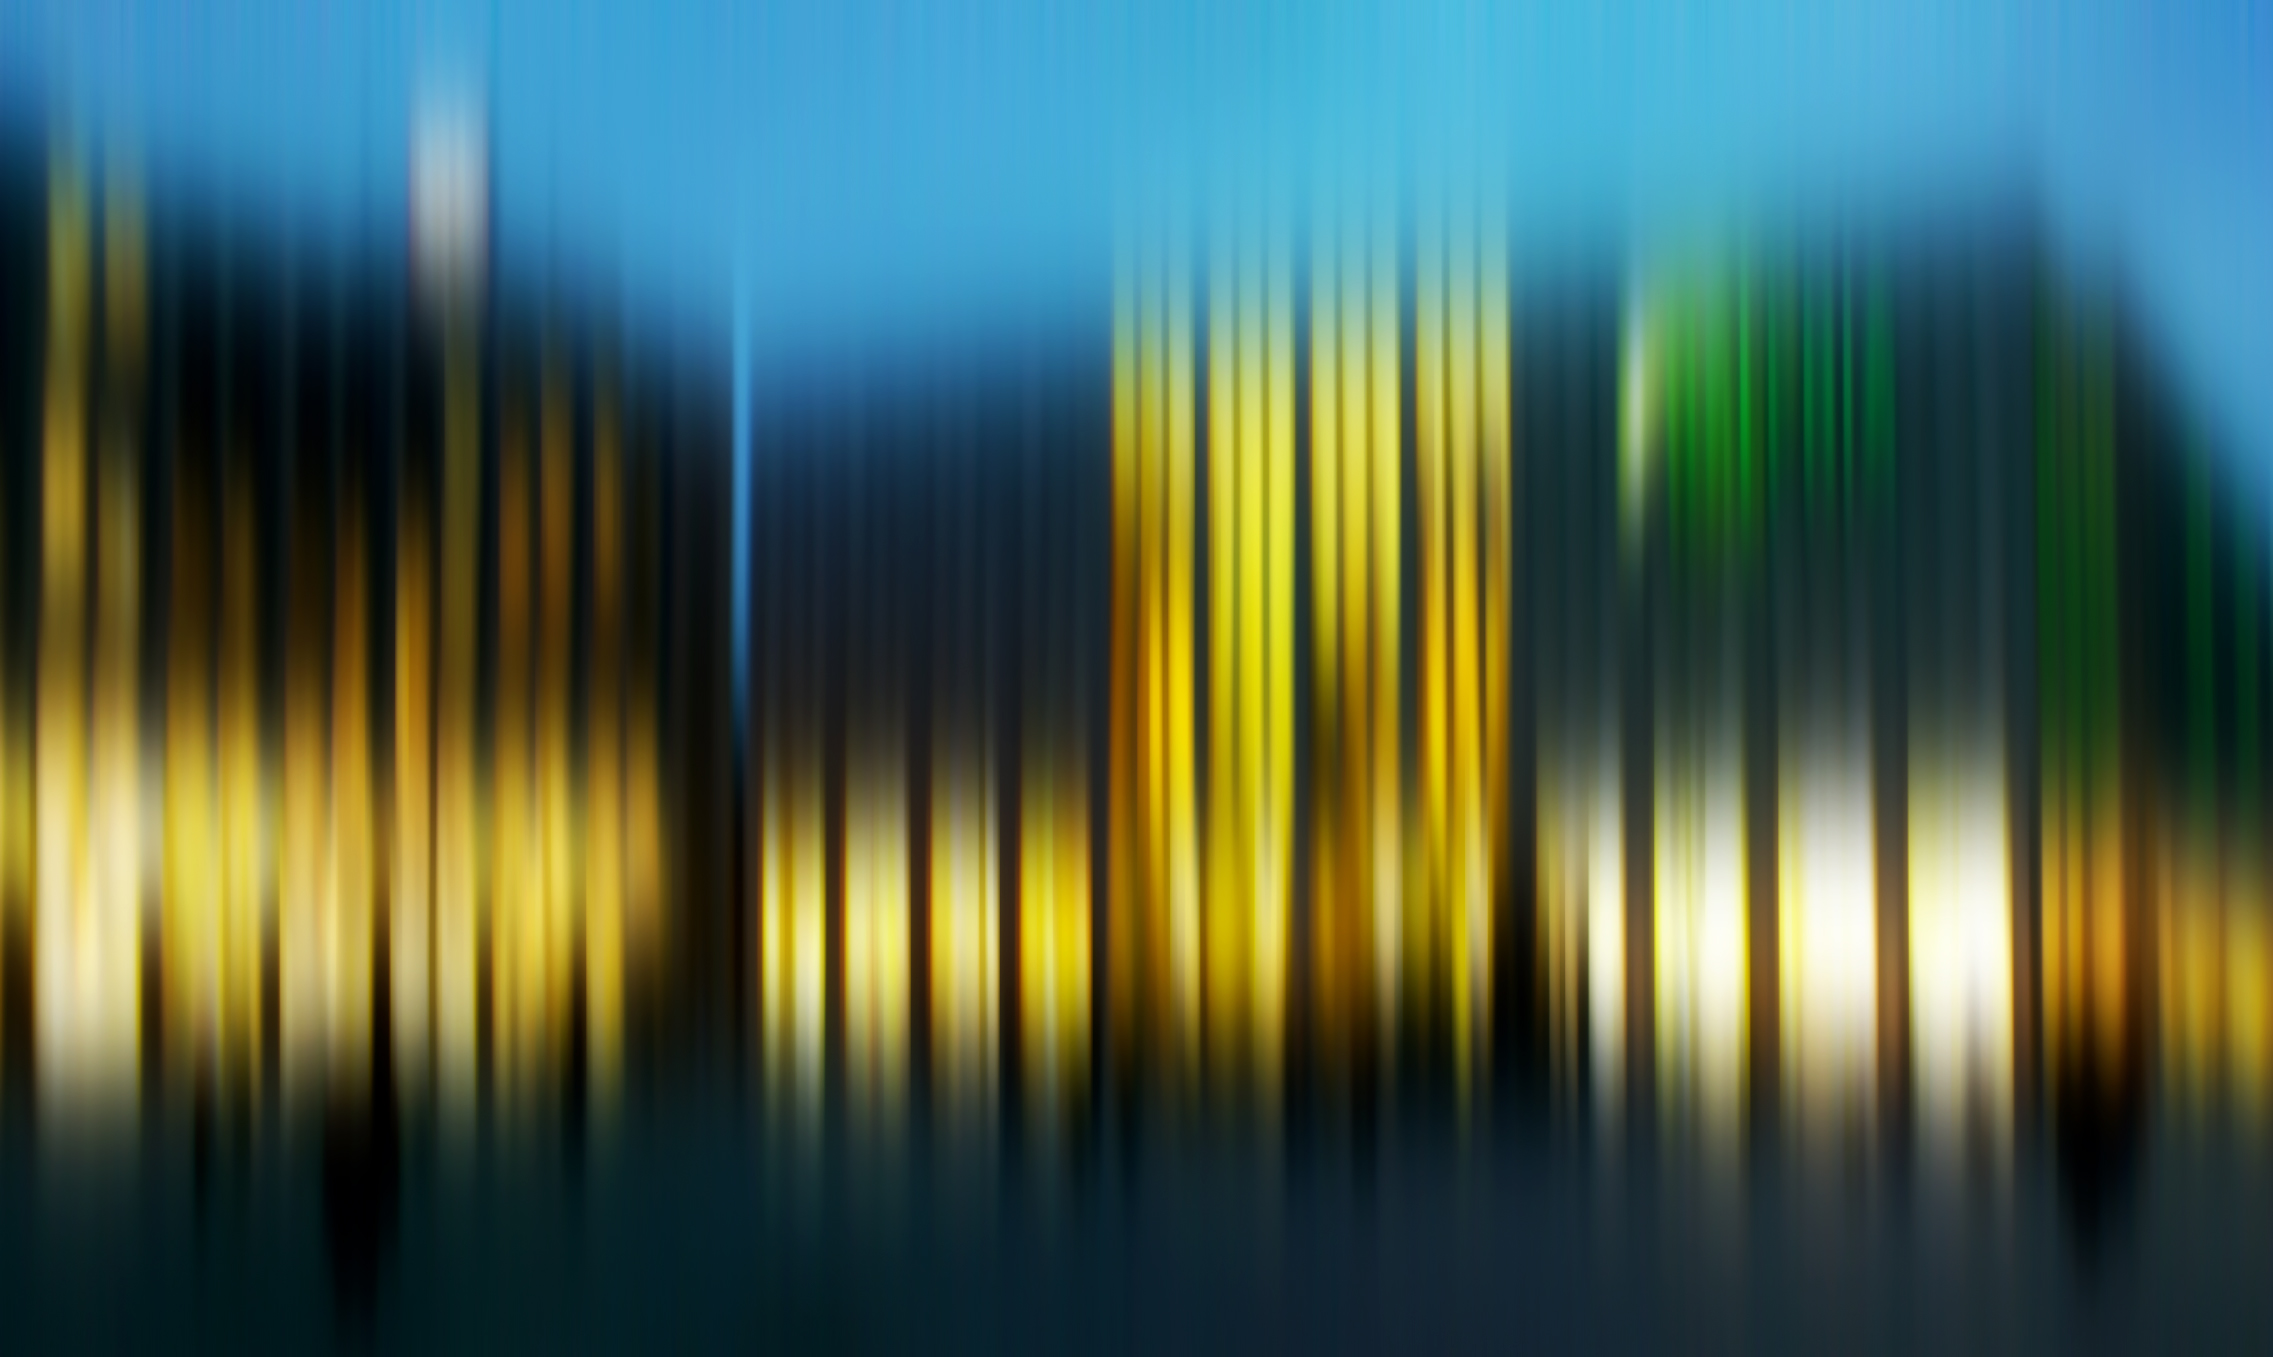 Abstract Architecture Ulf Buschmann Photography